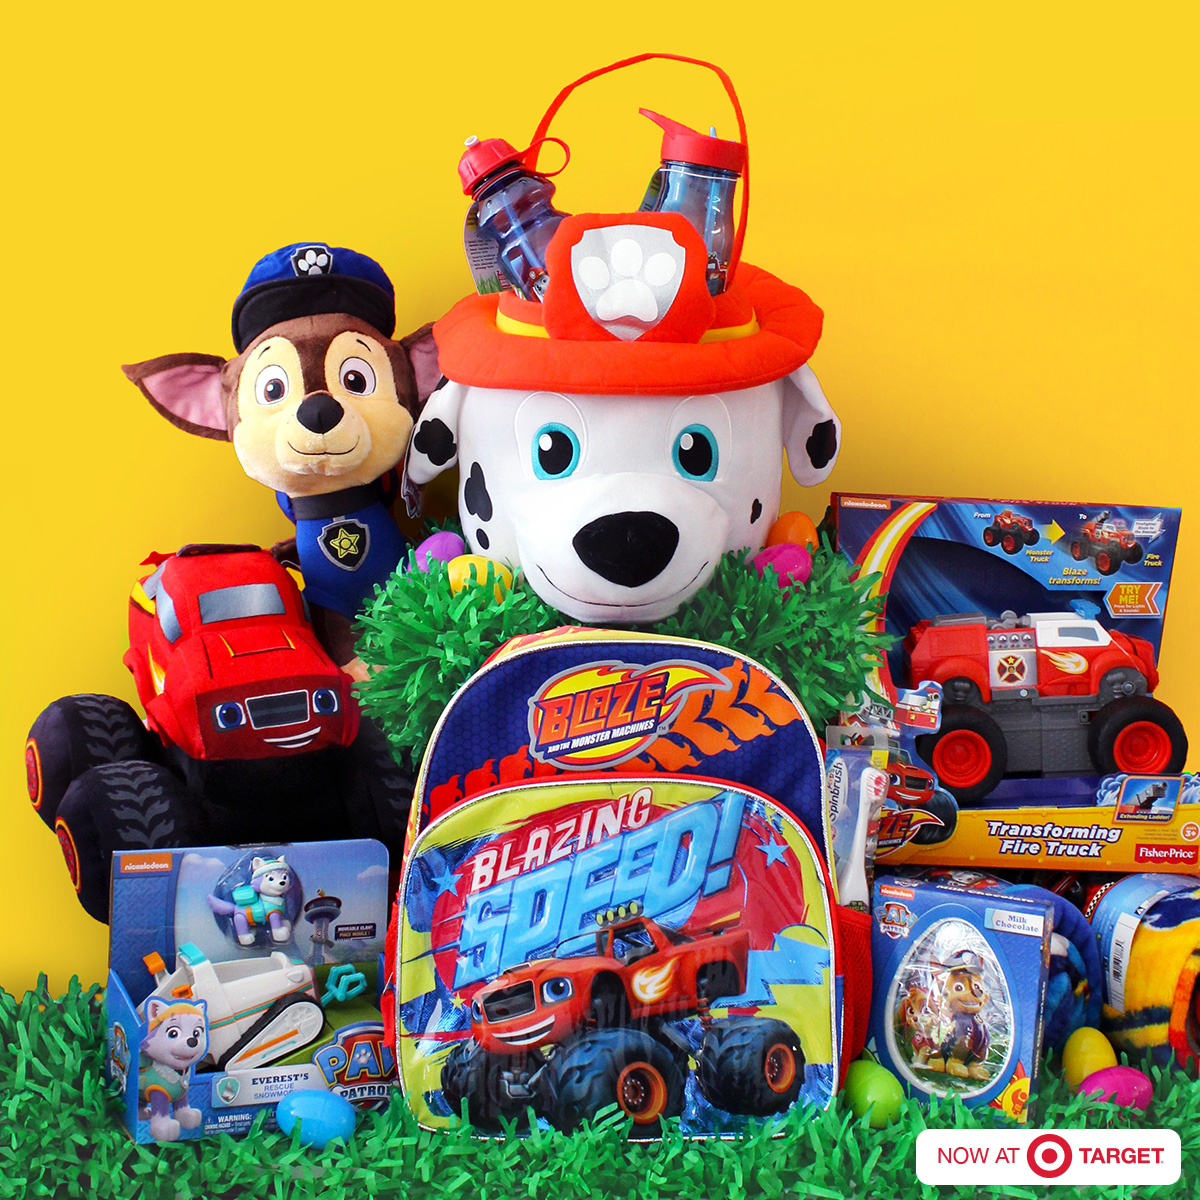 Nick Jr. Easter Sweepstakes Prizes